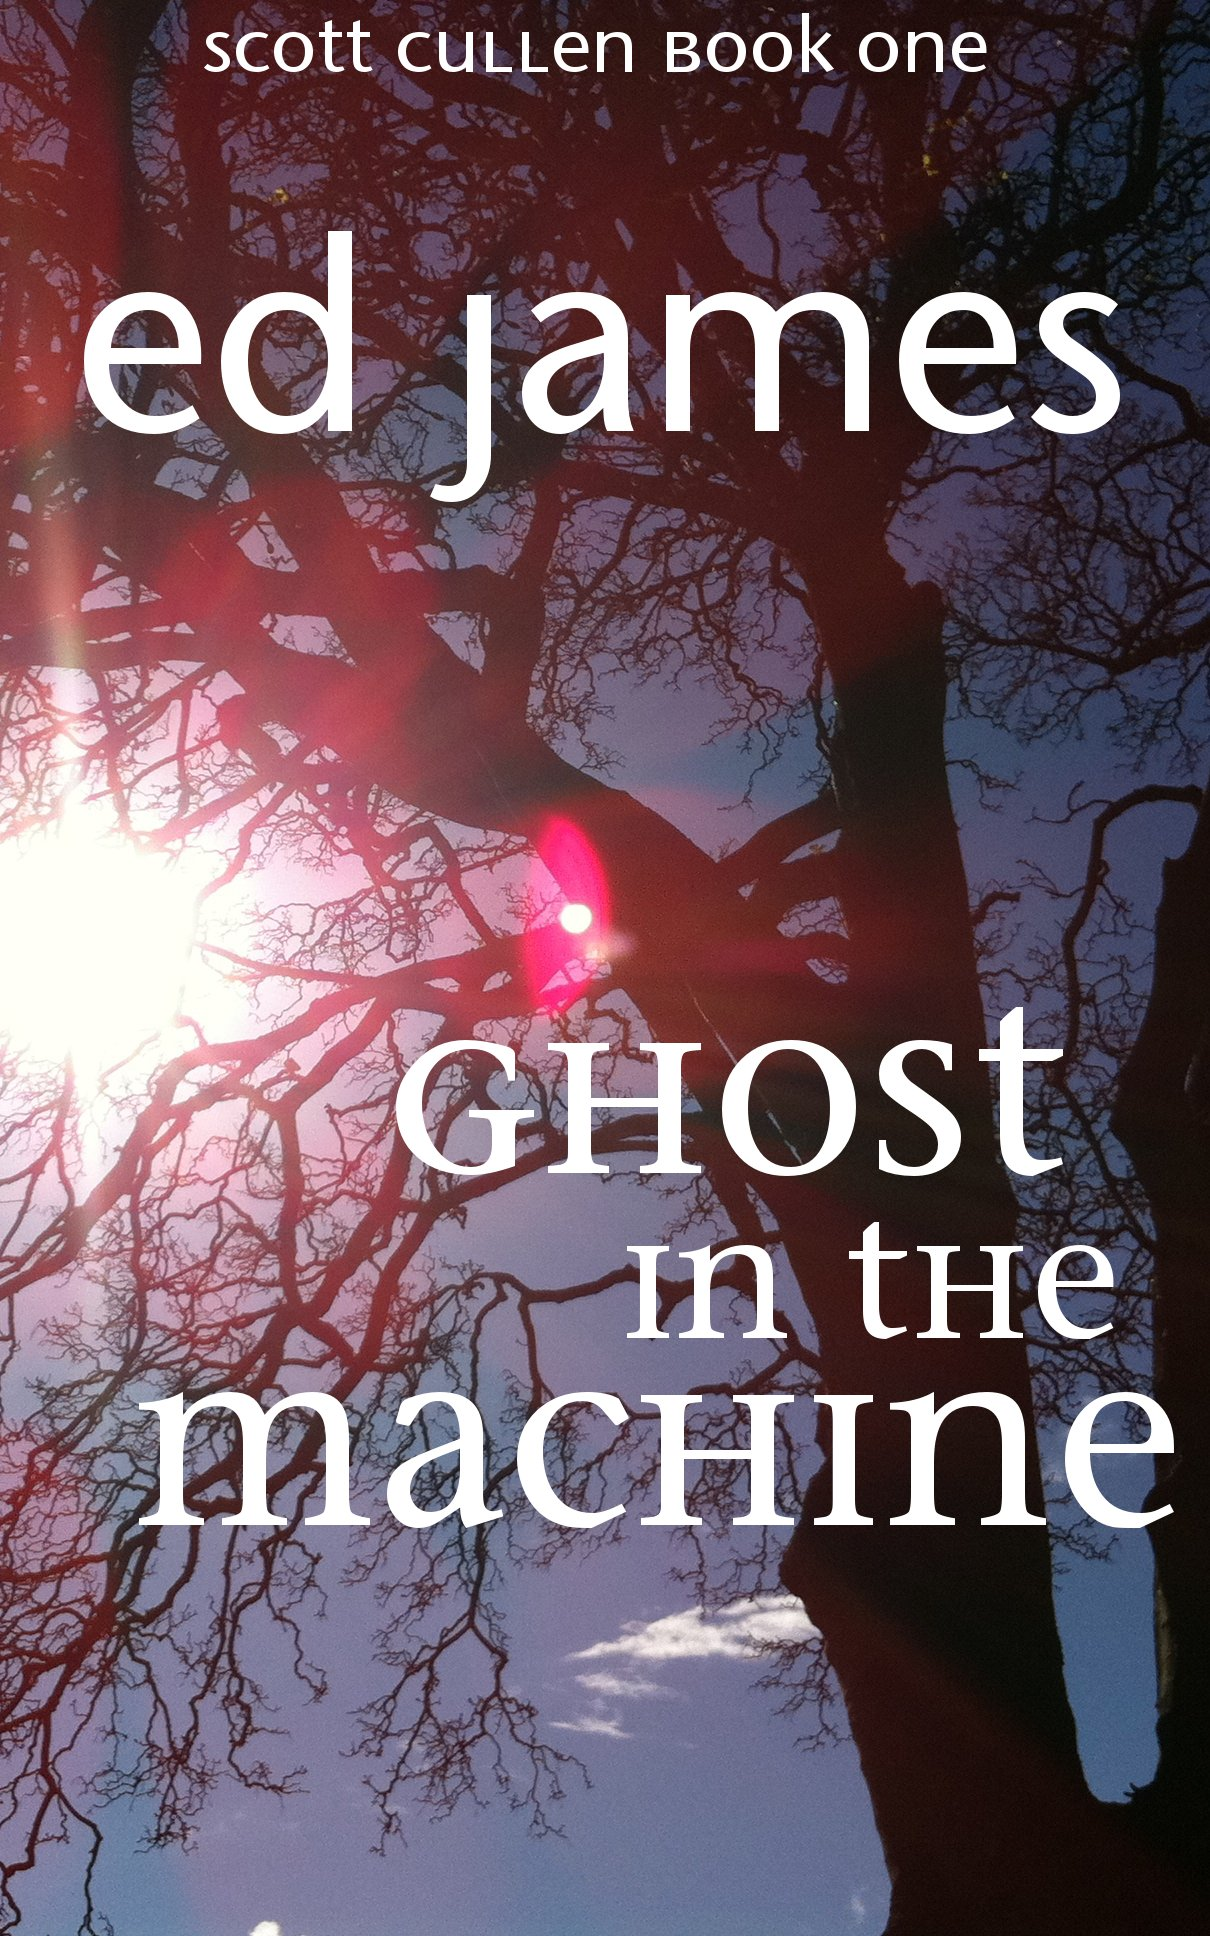 Sneak Peek: Ghost in the Machine by Ed James